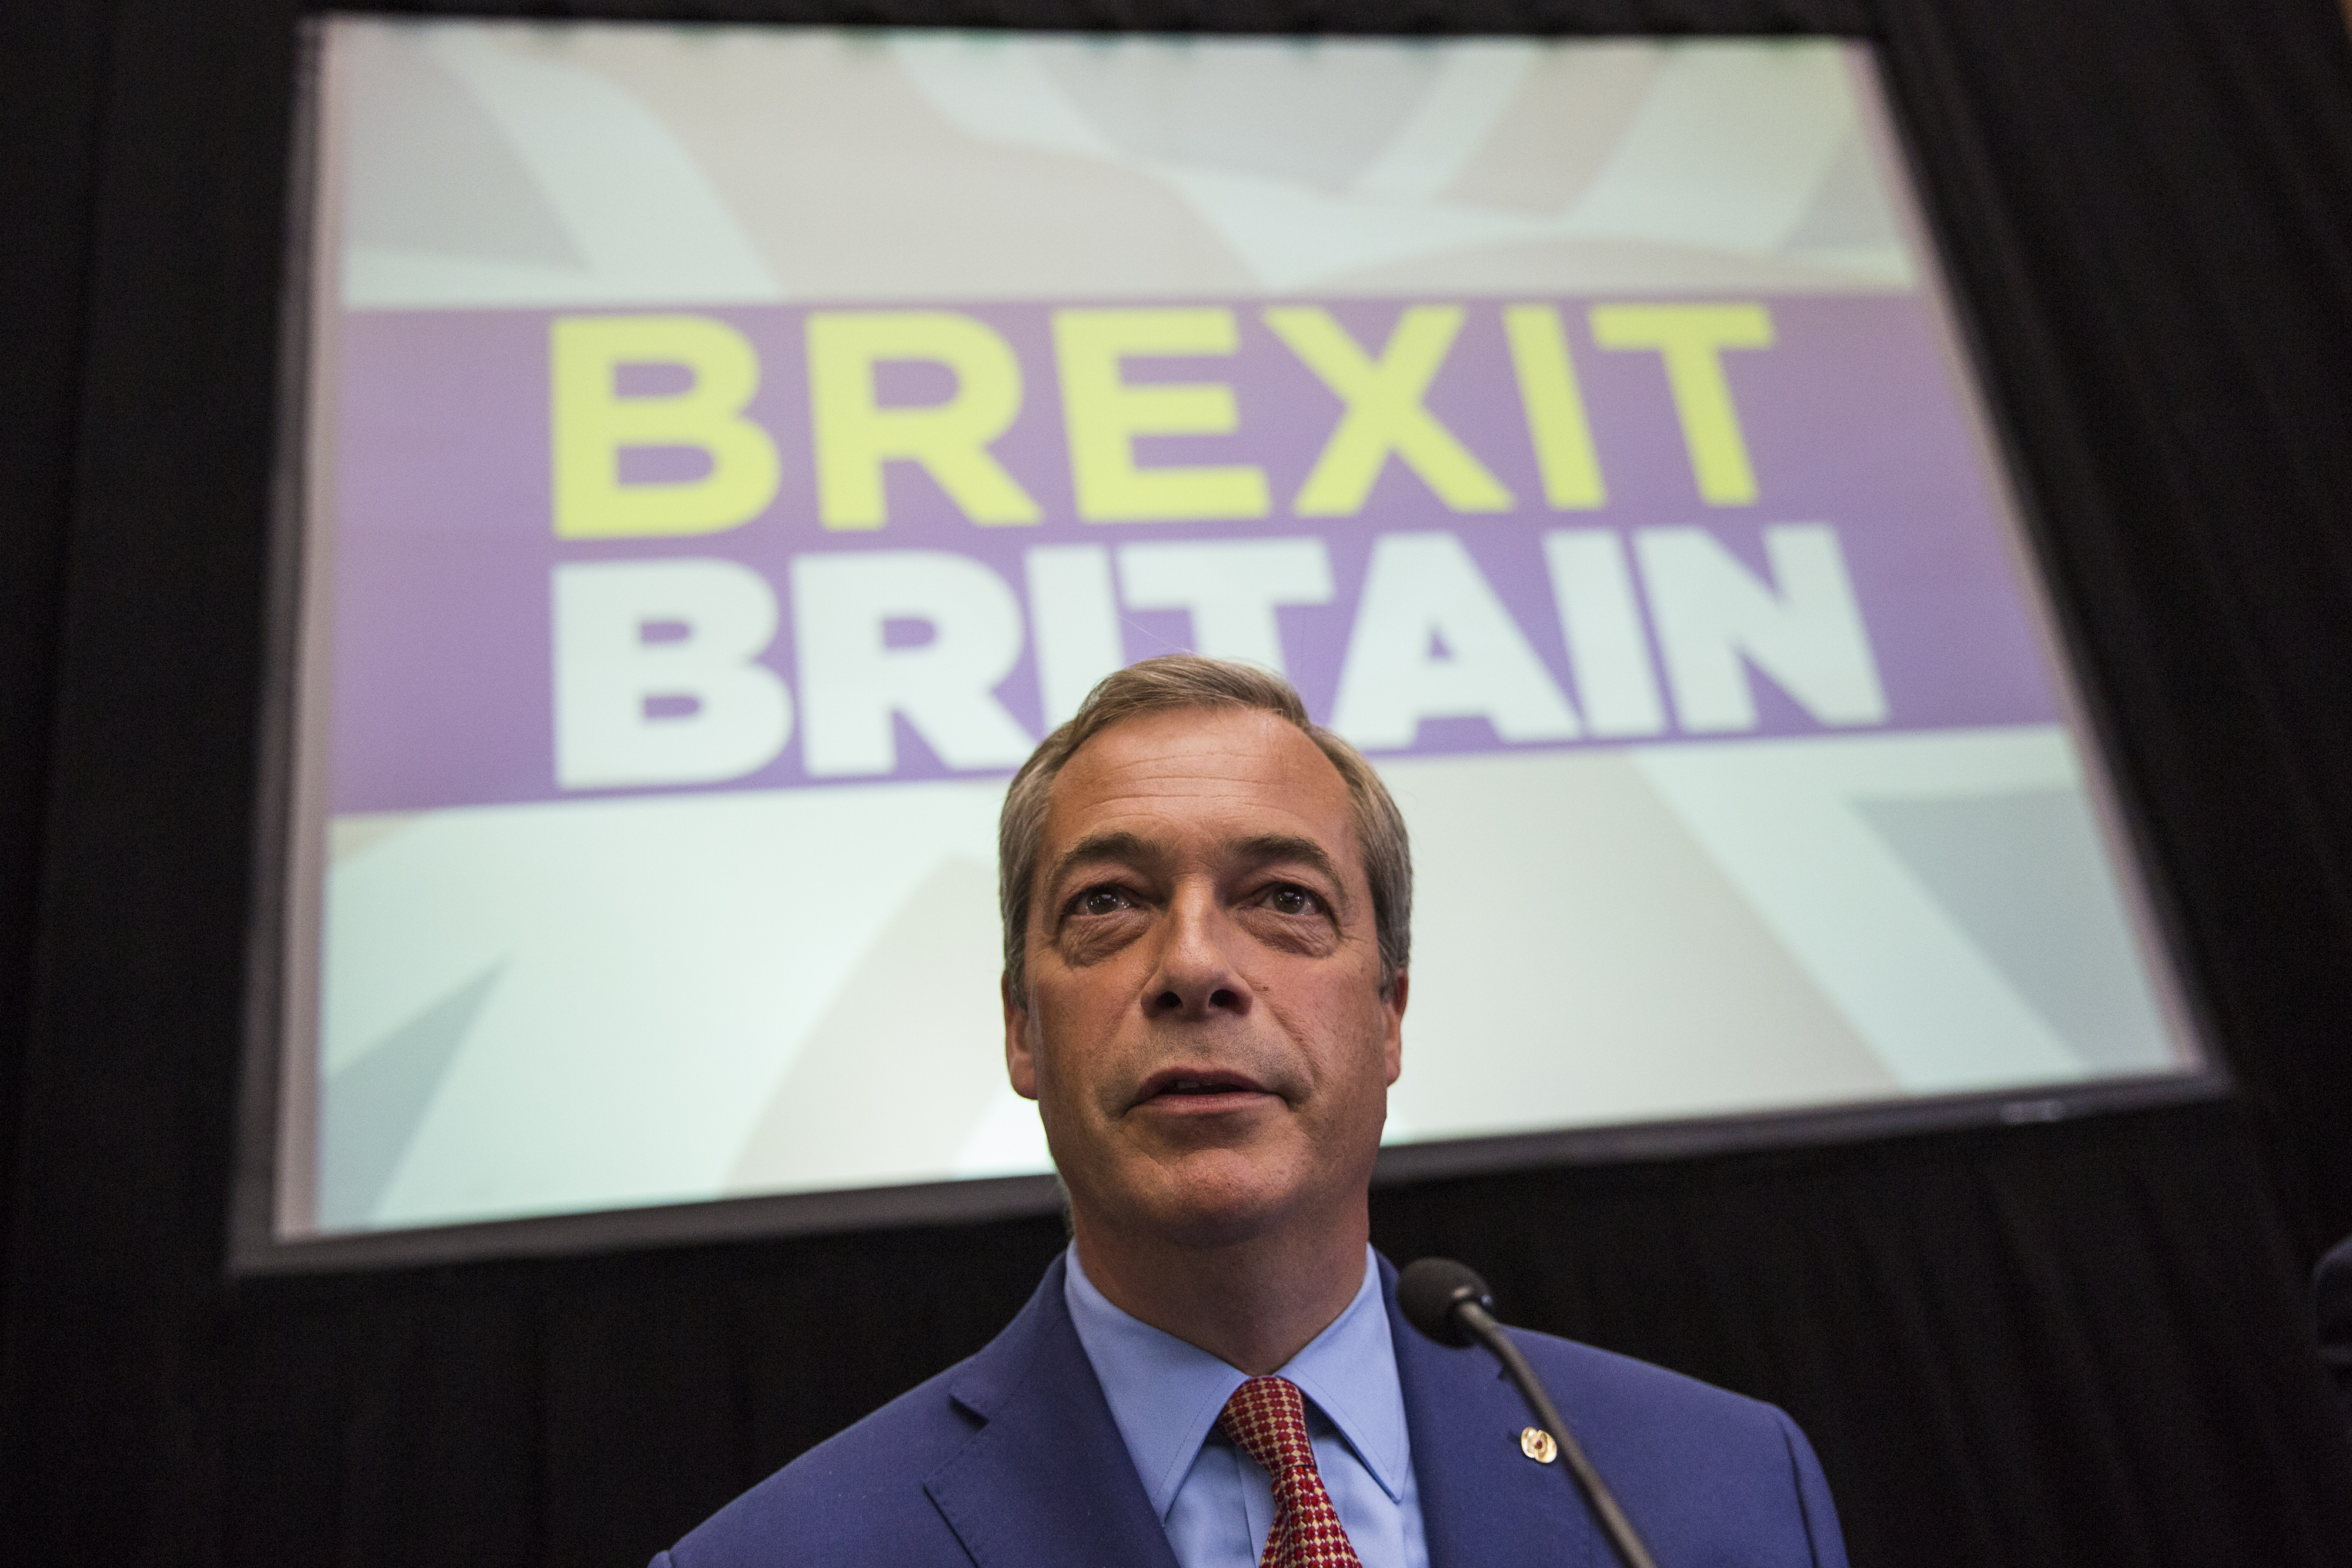 Nigel Farage in front of Brexit sign